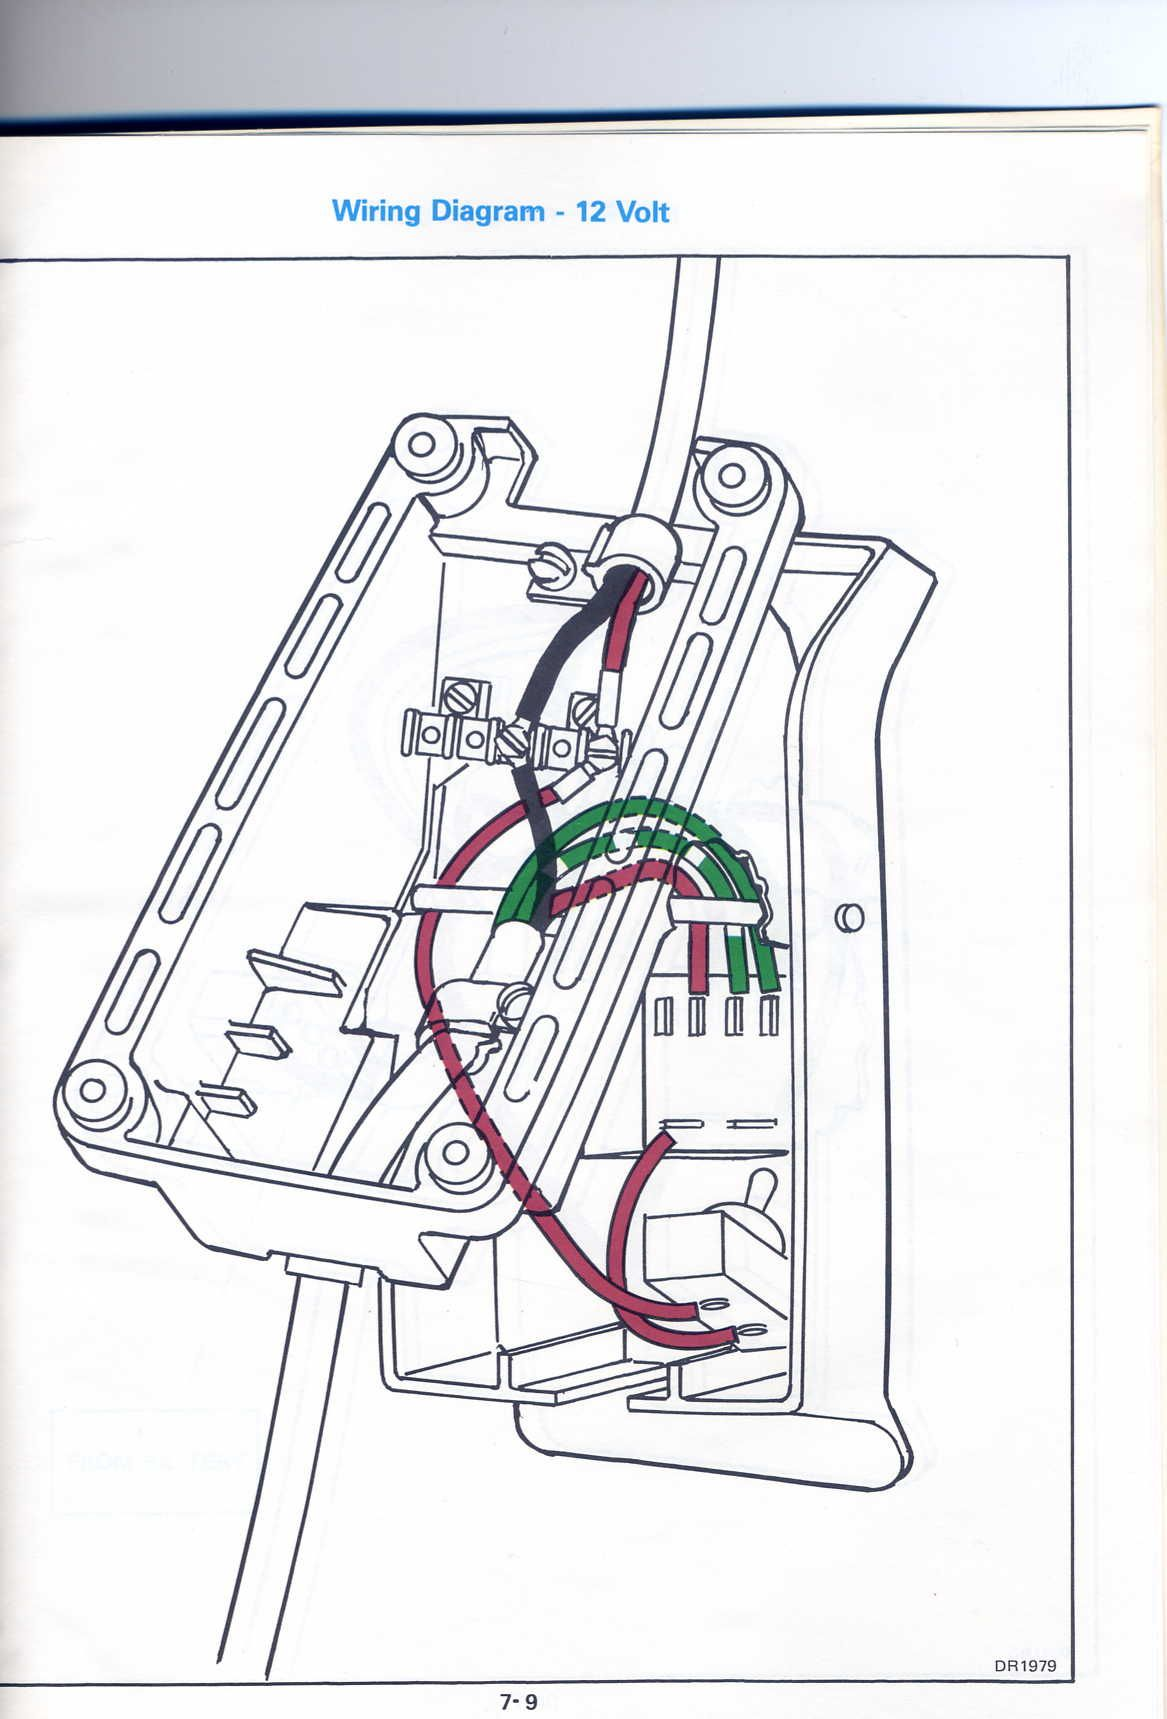 motorguide trolling motor wiring diagram trying to repair a friends rh pinterest com